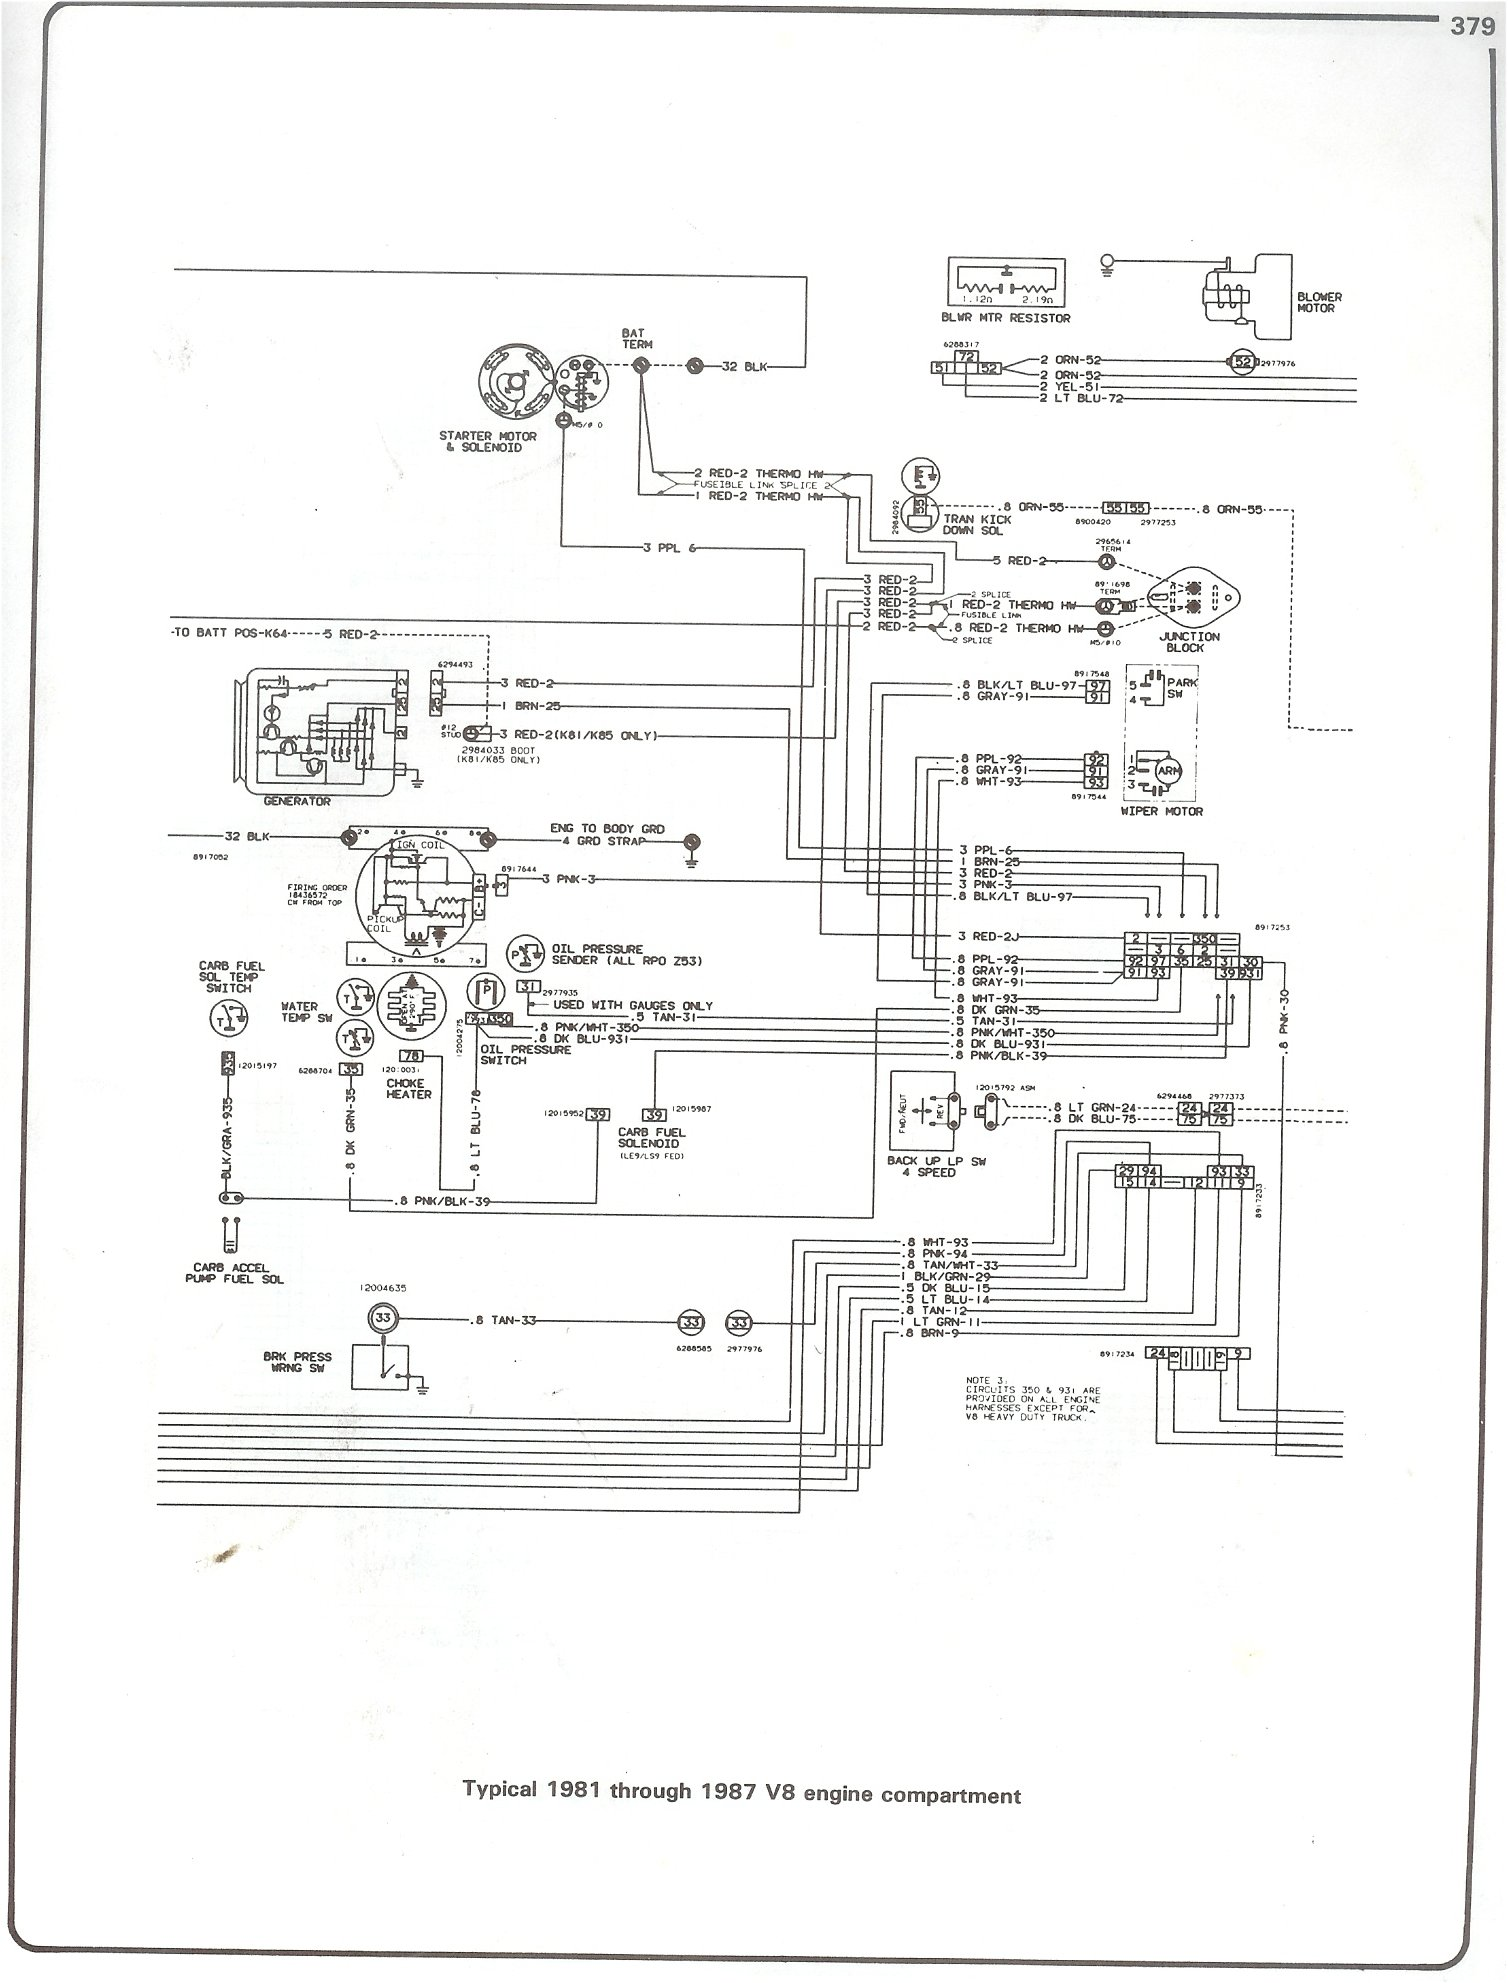 81 87_V8_engine chevy wiring diagrams wiring diagrams for chevy trucks \u2022 free 2000 Astro Van Wiring Diagram at n-0.co